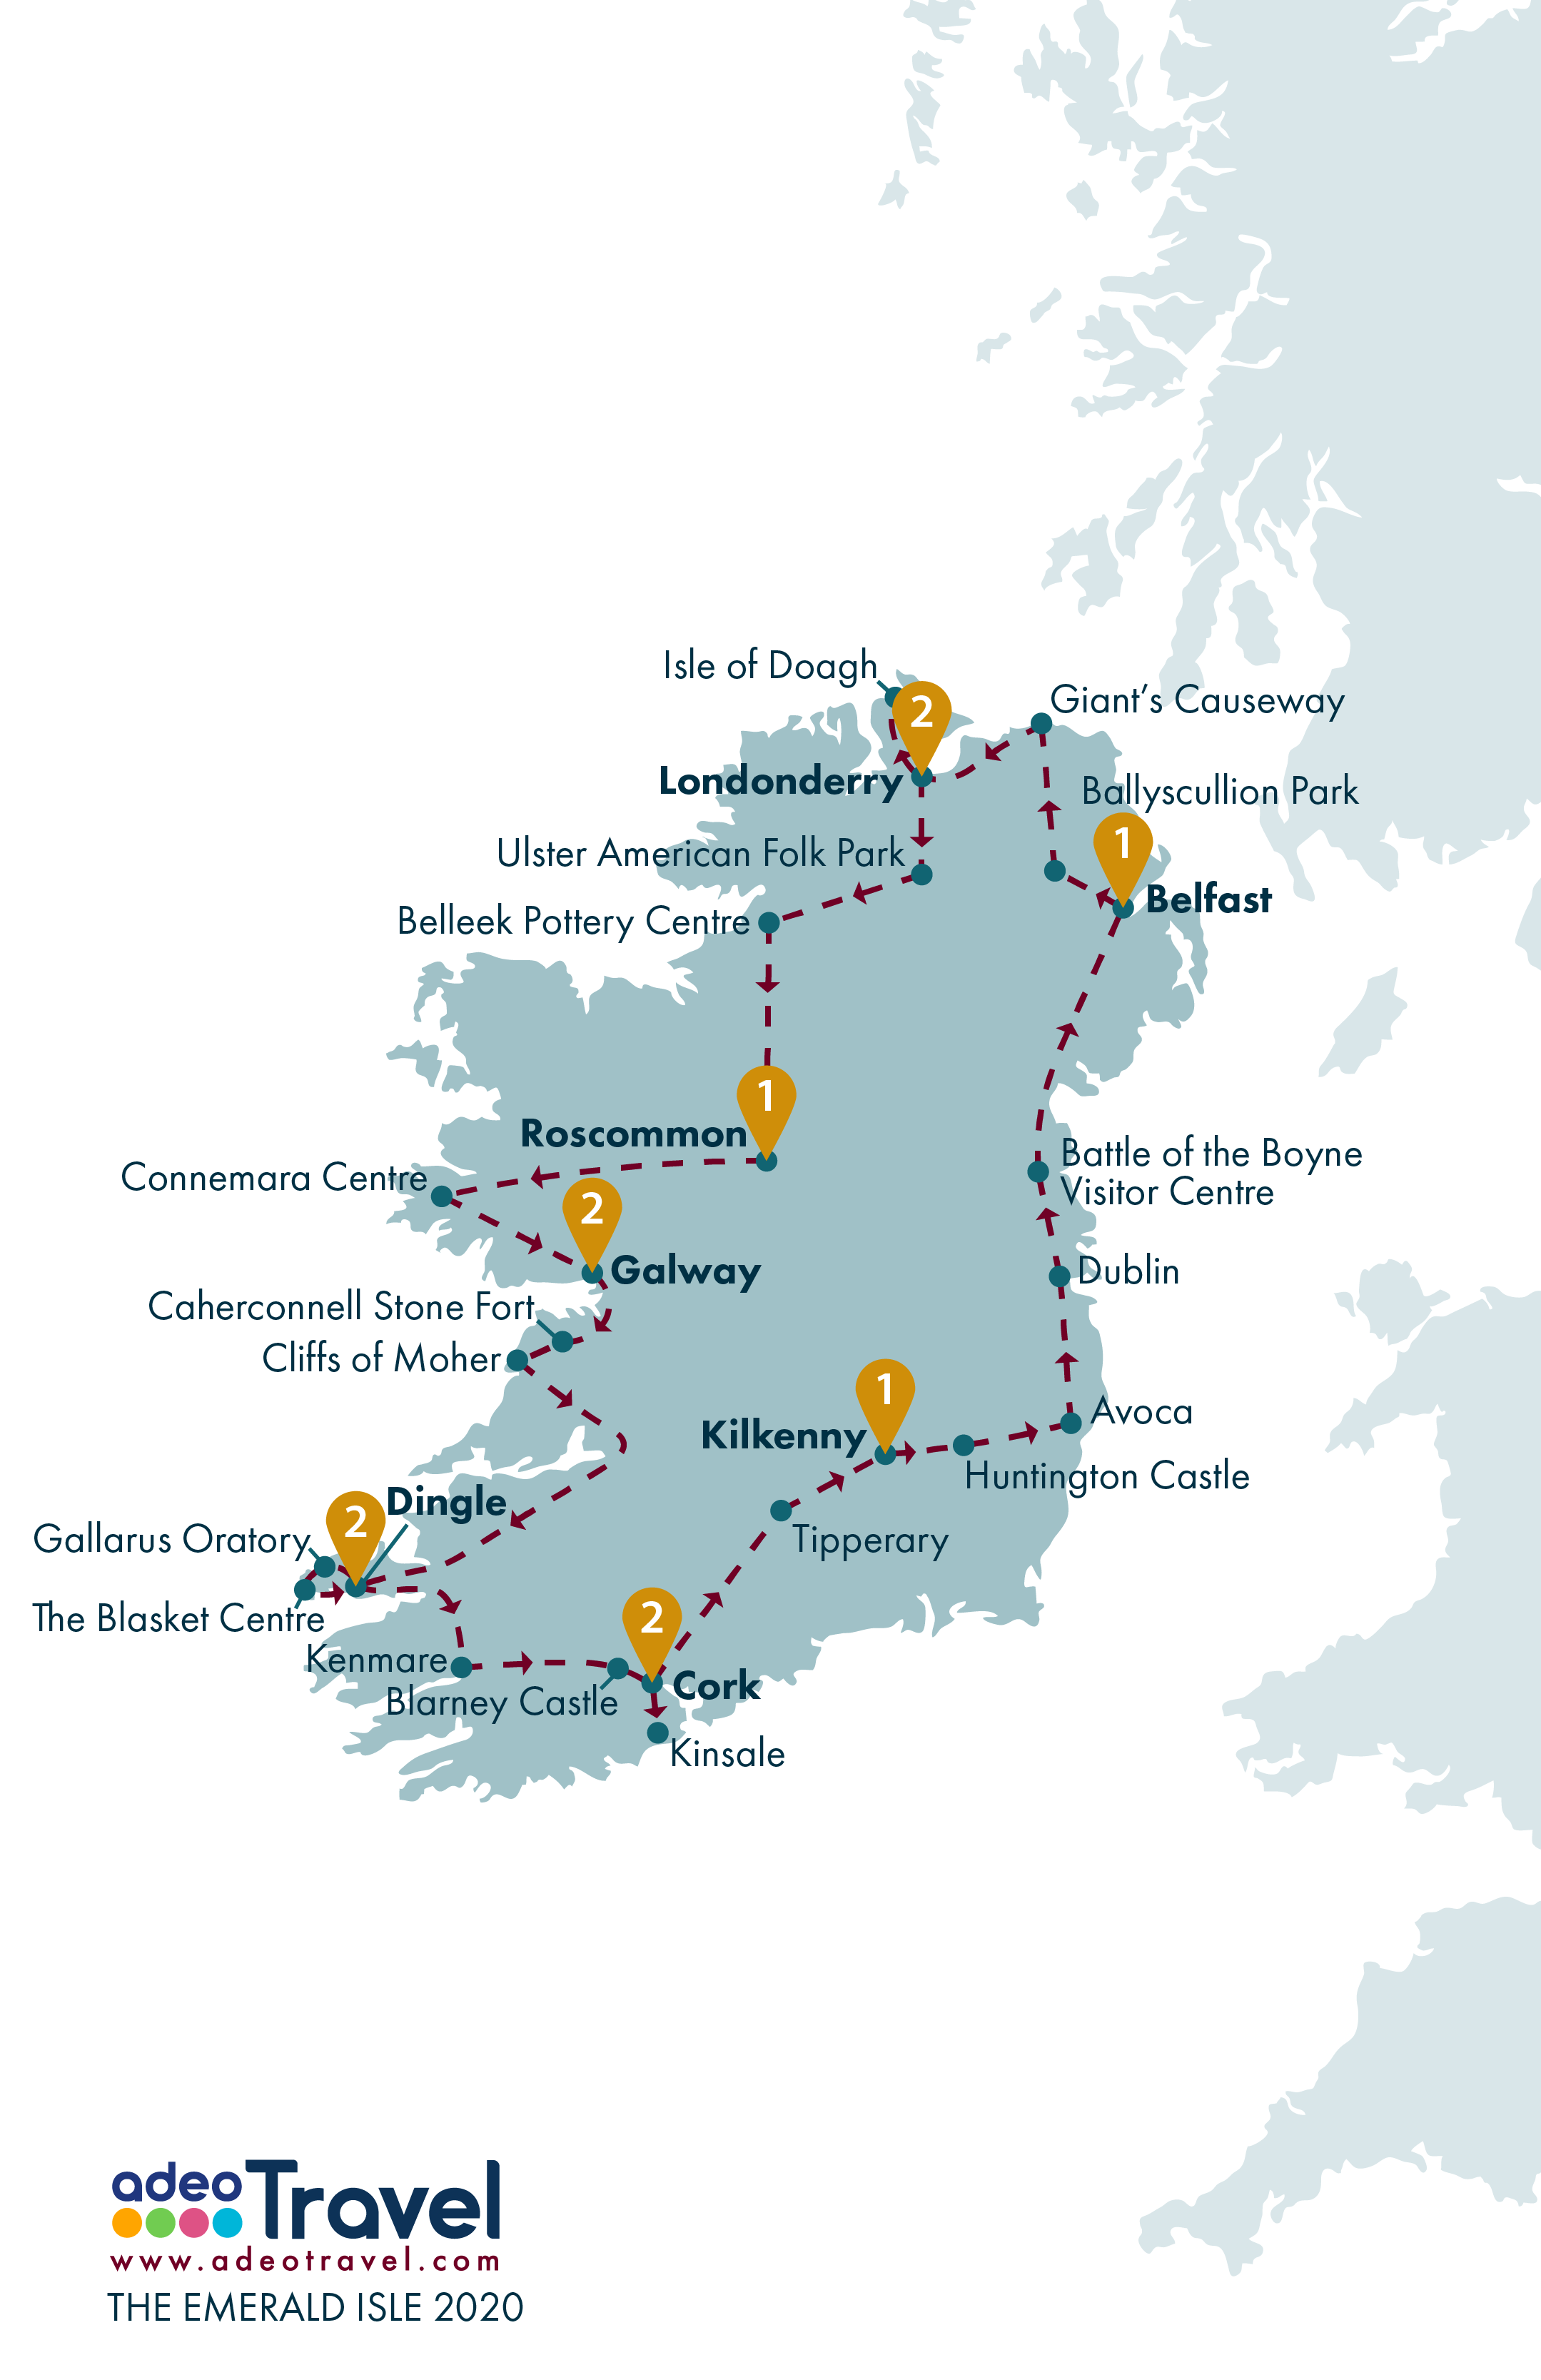 Map - The Emerald Isle 2020